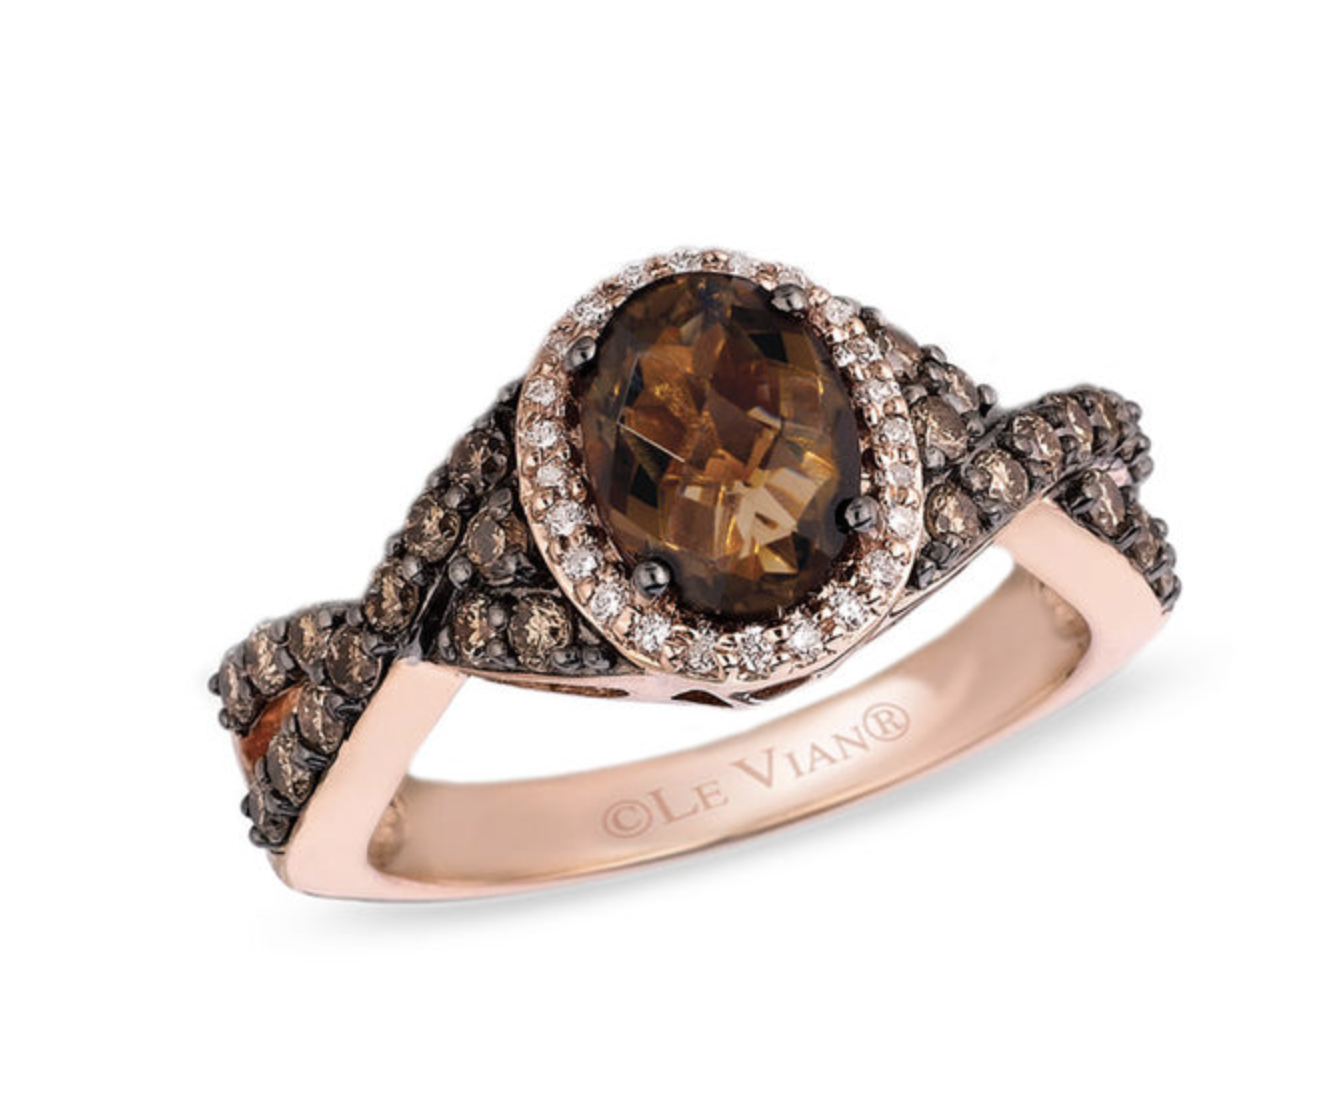 Le Vian® Chocolate Quartz™ and 5/8 CT. T.W. Diamond Ring in 14K Strawberry Gold®